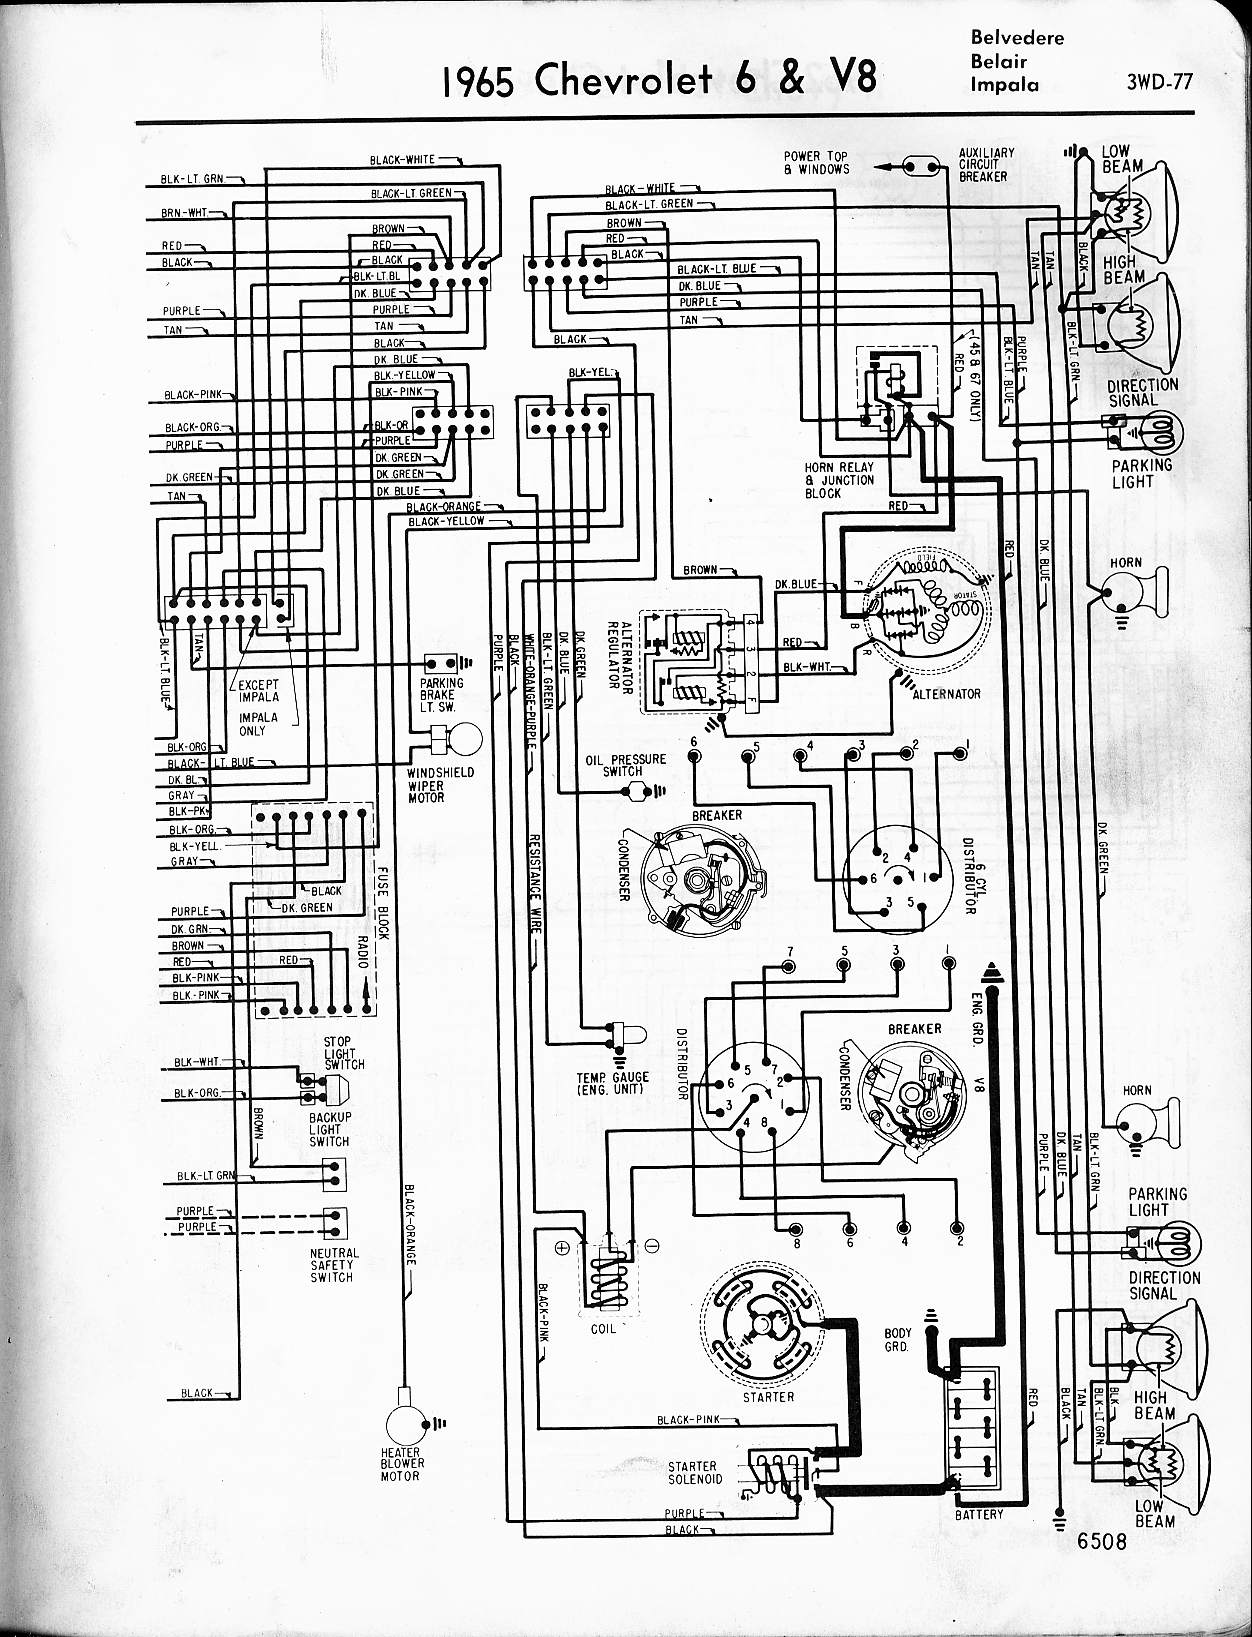 1971 Gmc Wiring Harness Great Installation Of Diagram For Truck 1972 Todays Rh 12 7 10 1813weddingbarn Com Diagrams